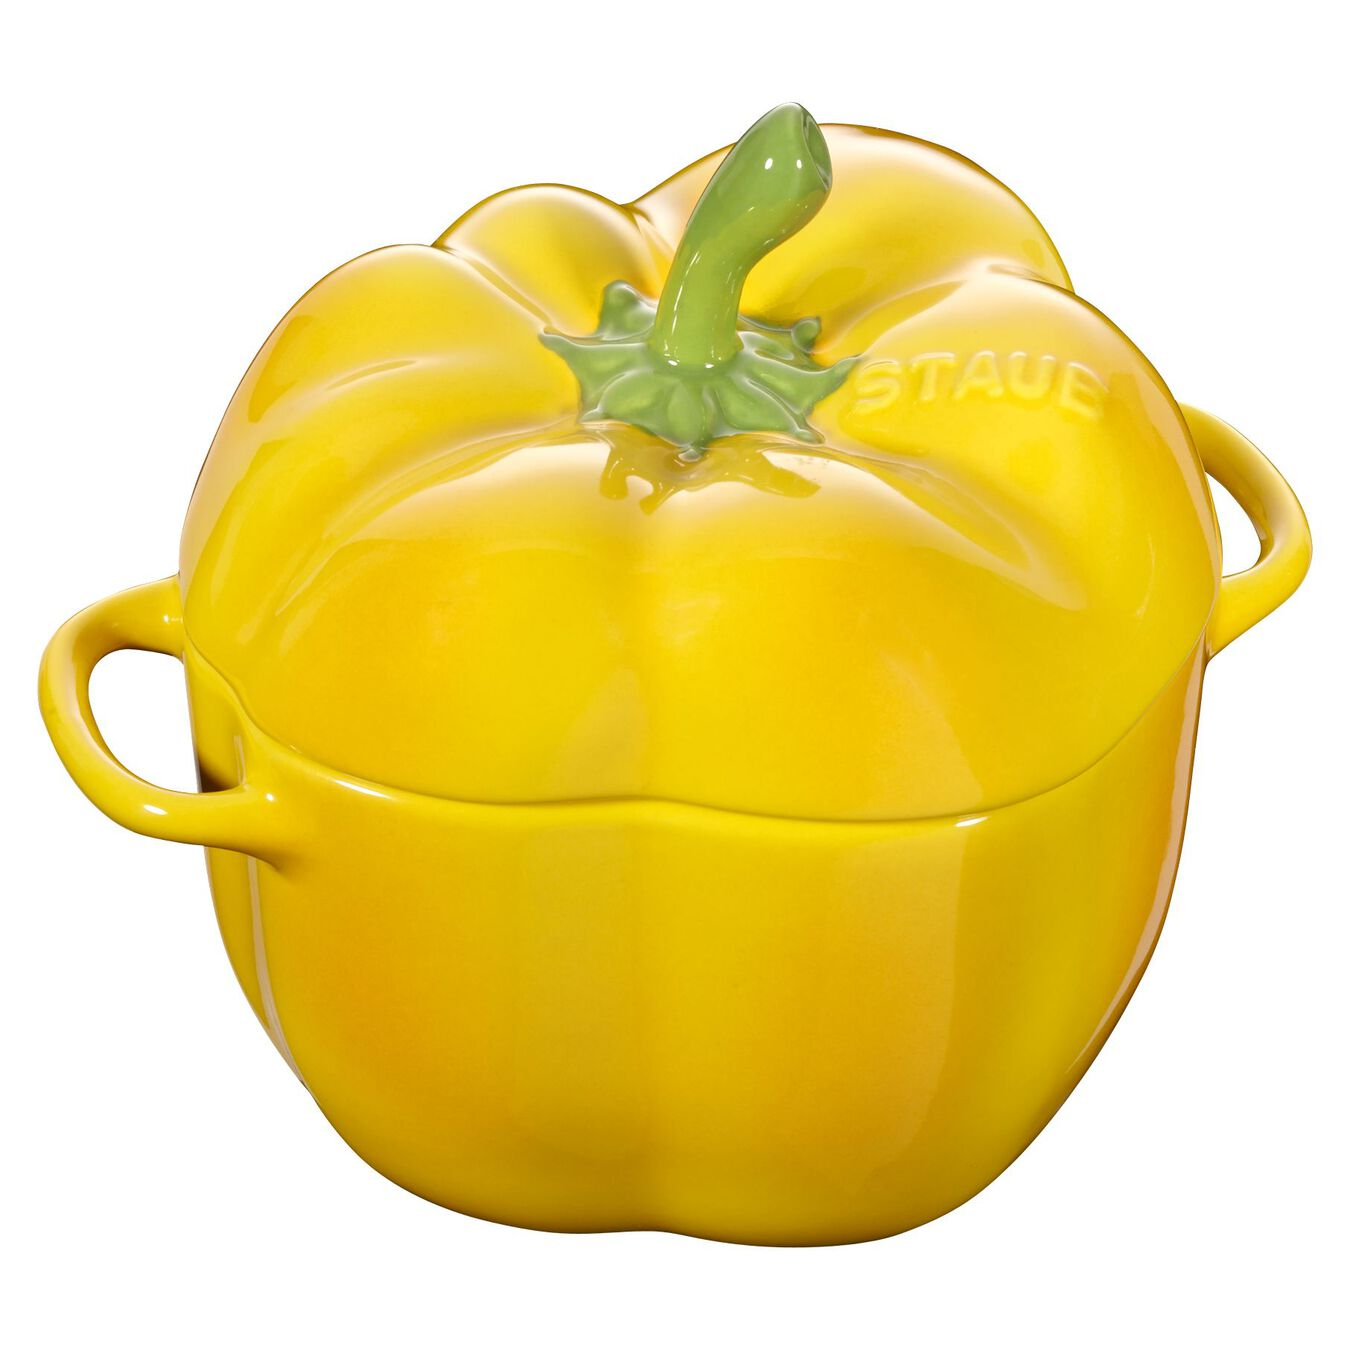 450 ml pepper Cocotte, yellow,,large 1